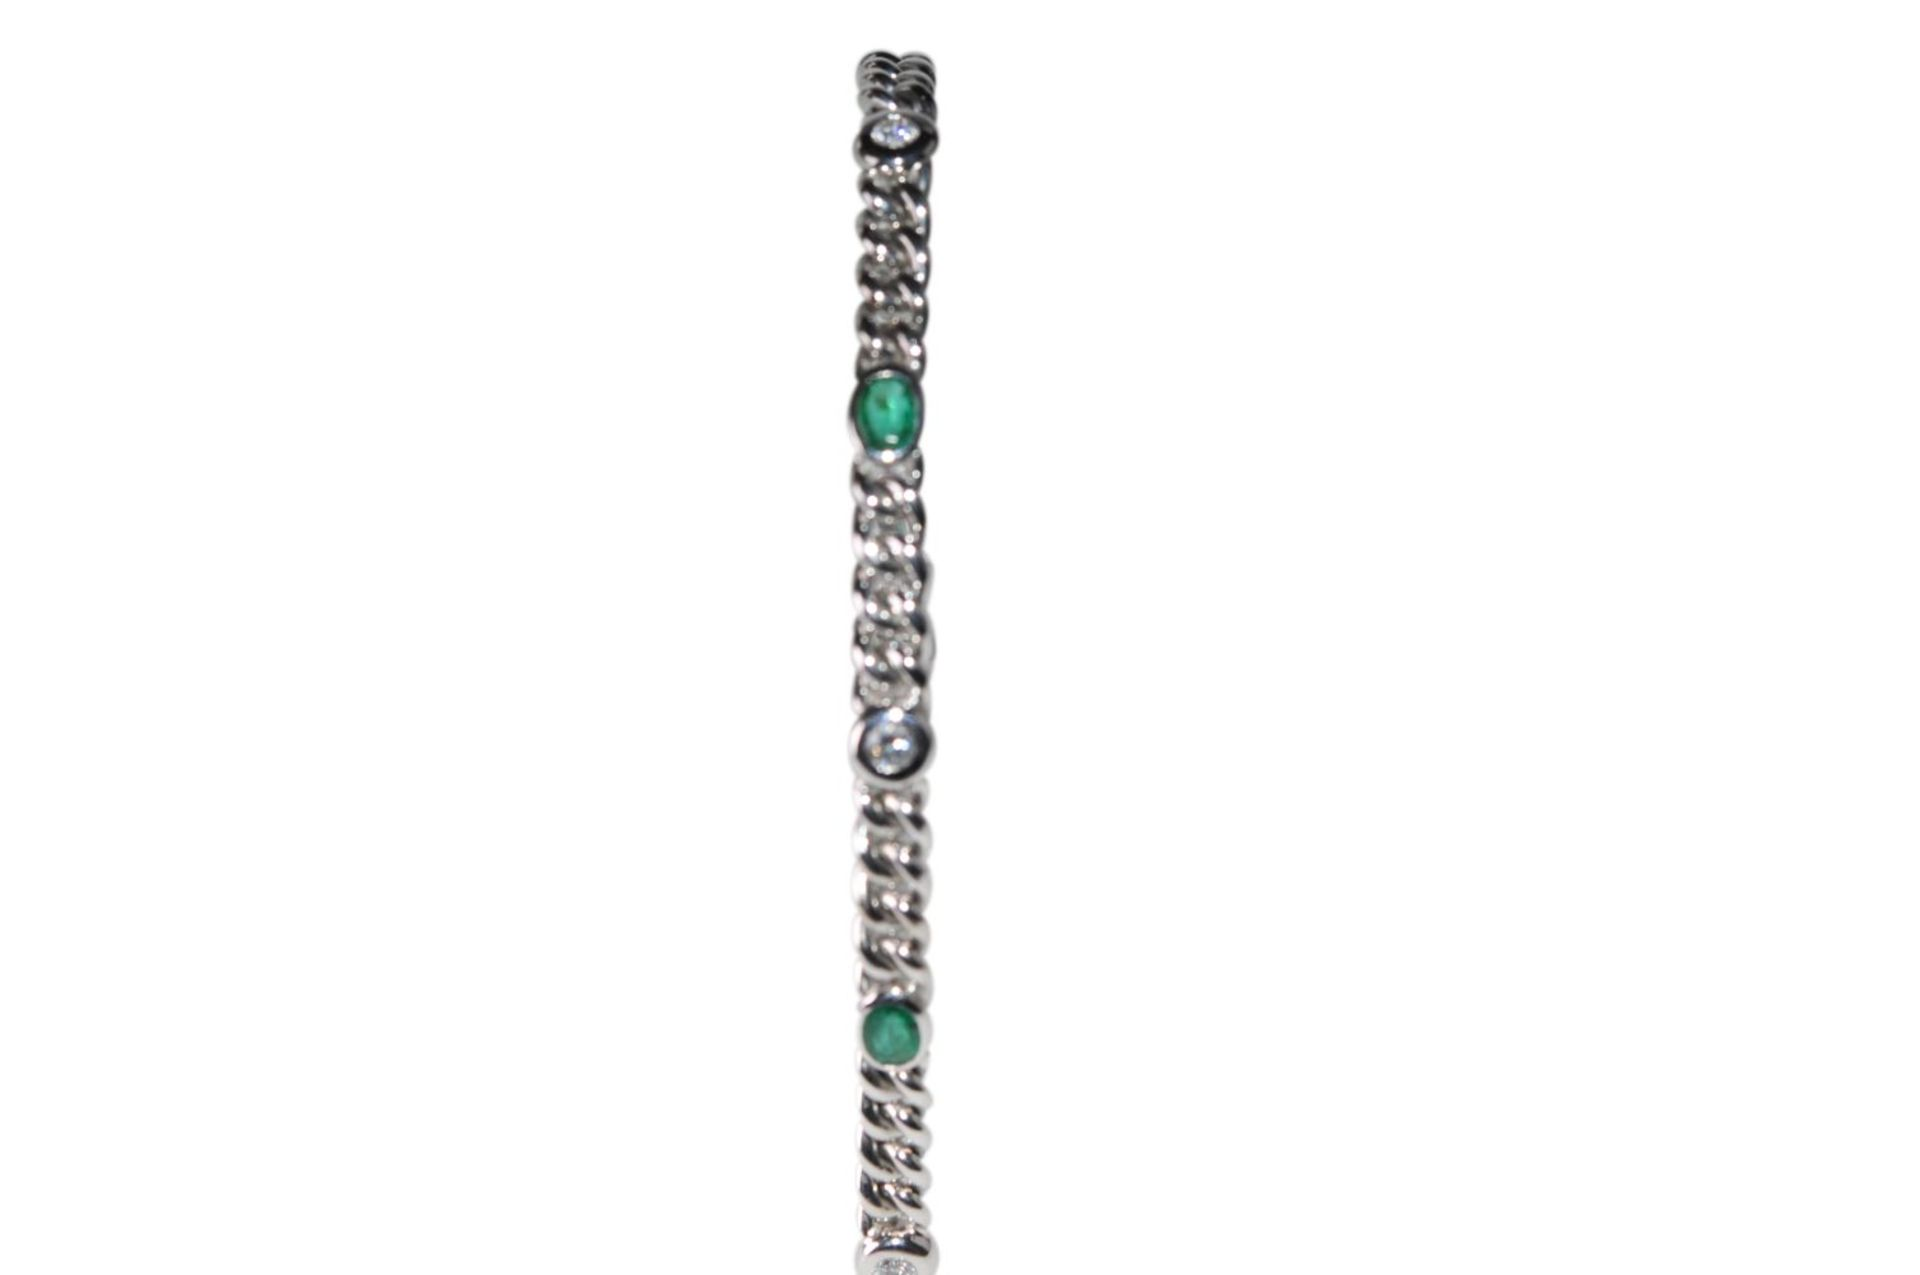 Los 113 - Bracelet18Kt white gold Bracelet with diamonds total carat weight approx. 0.74ct and emeralds,